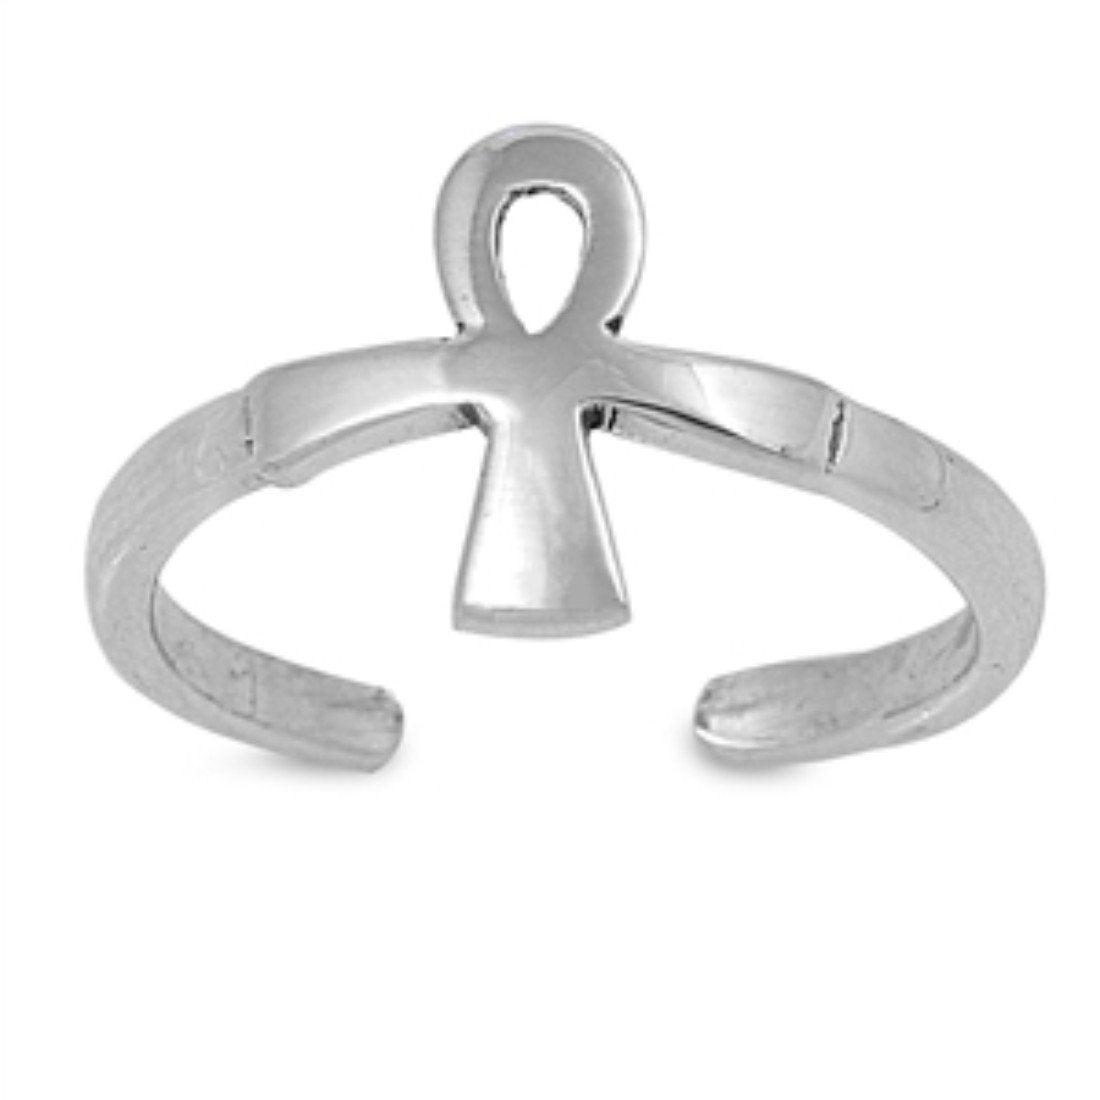 Ankh Adjustable Silver Toe Ring Band 925 Sterling Silver